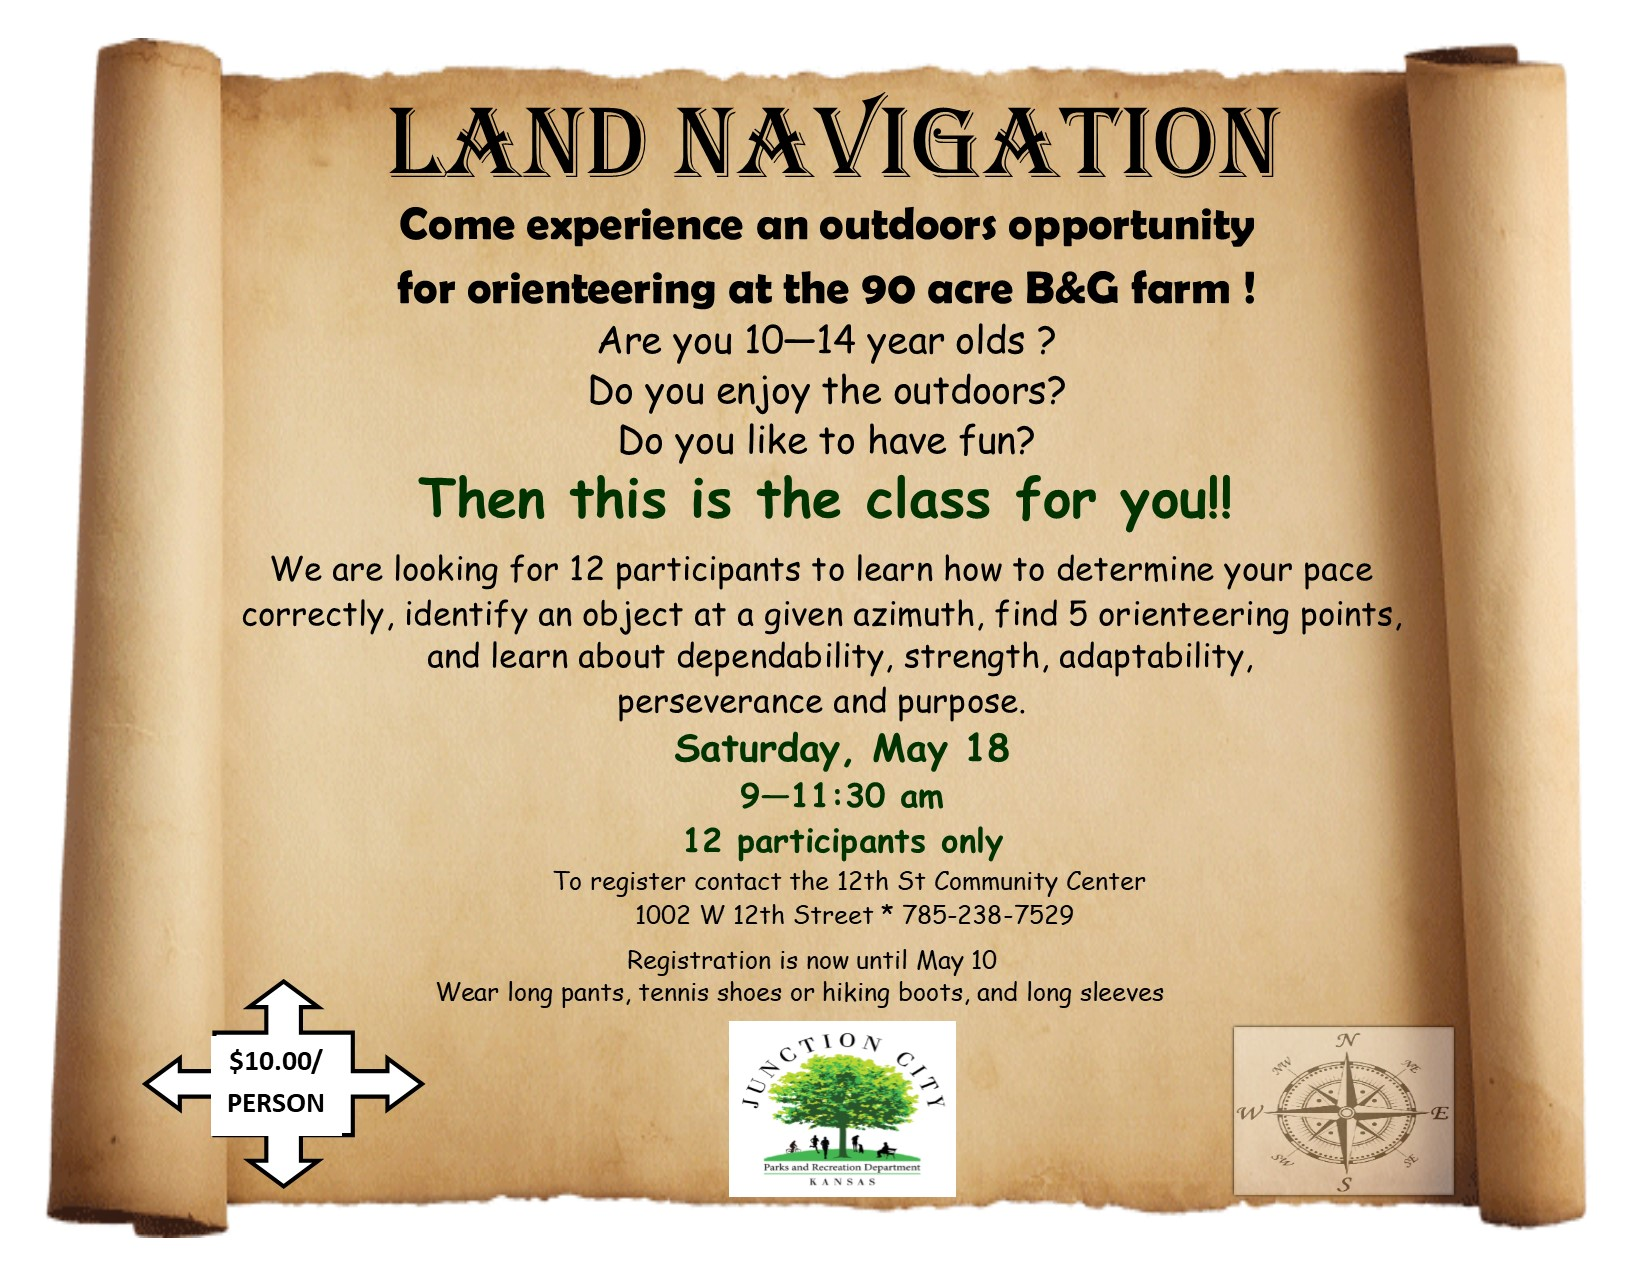 12th Street Community Center Land Navigation flyer